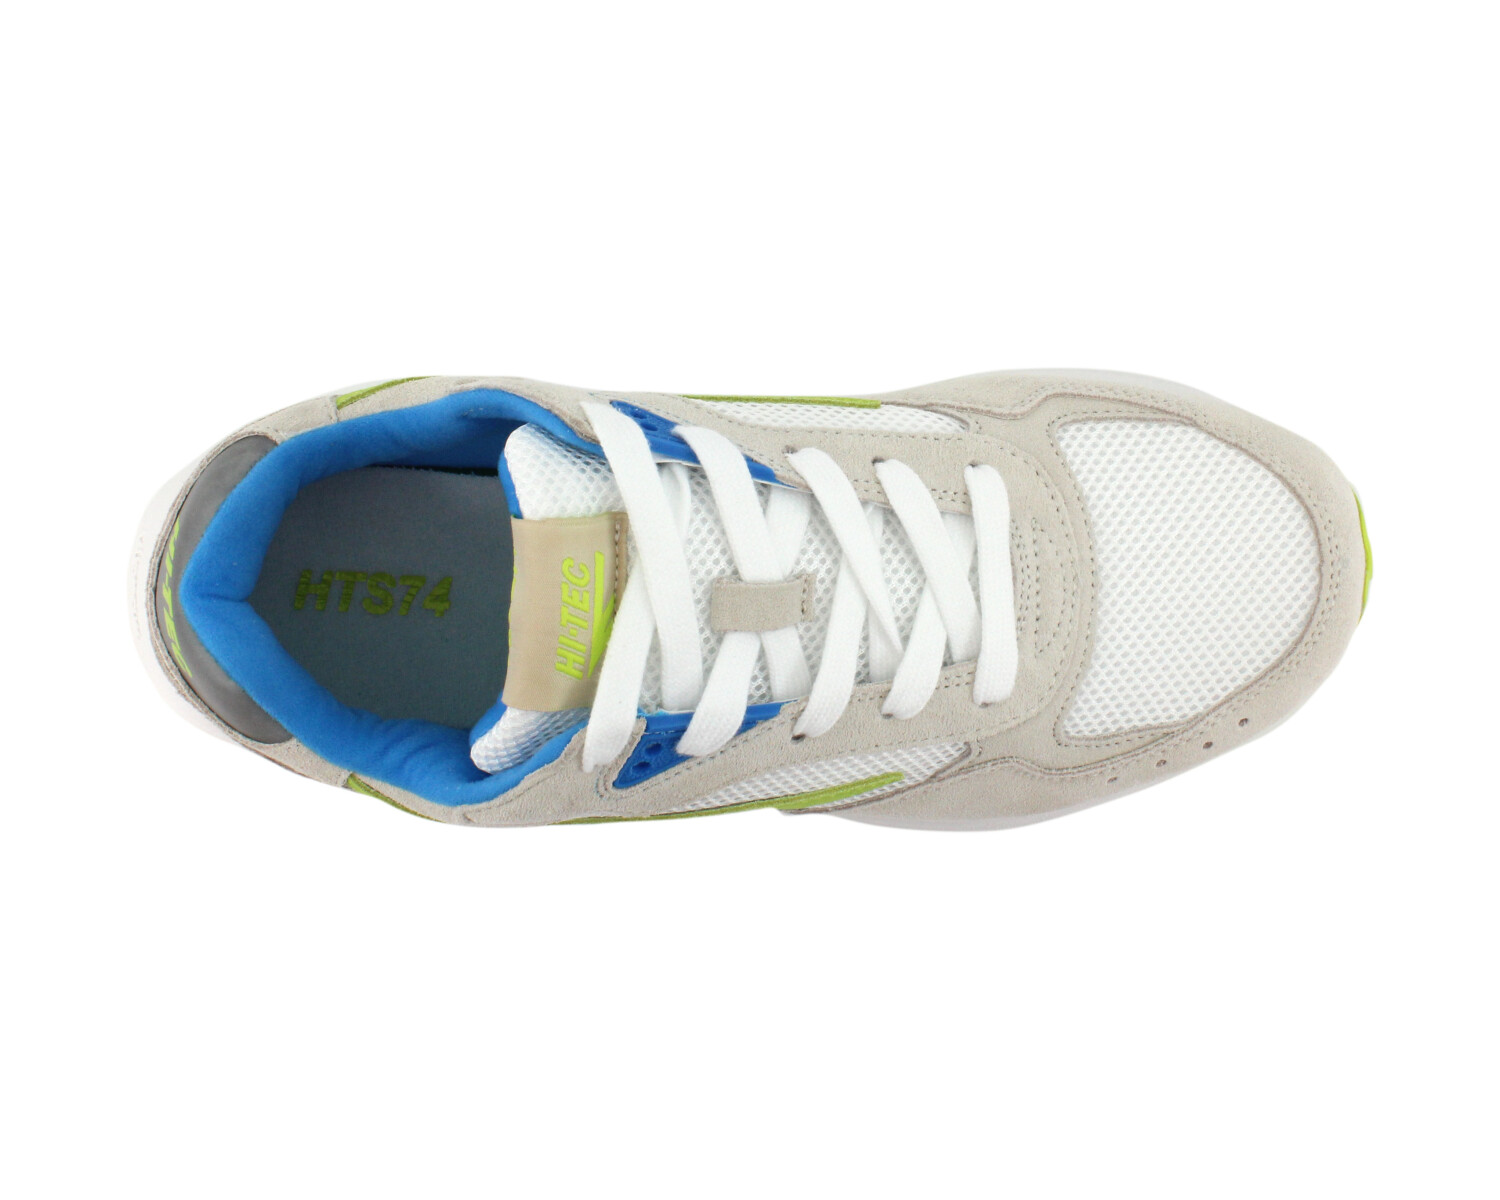 Sneaker HI-TEC HTS SHADOW RGS OFF WHITE/BLUE/LIME